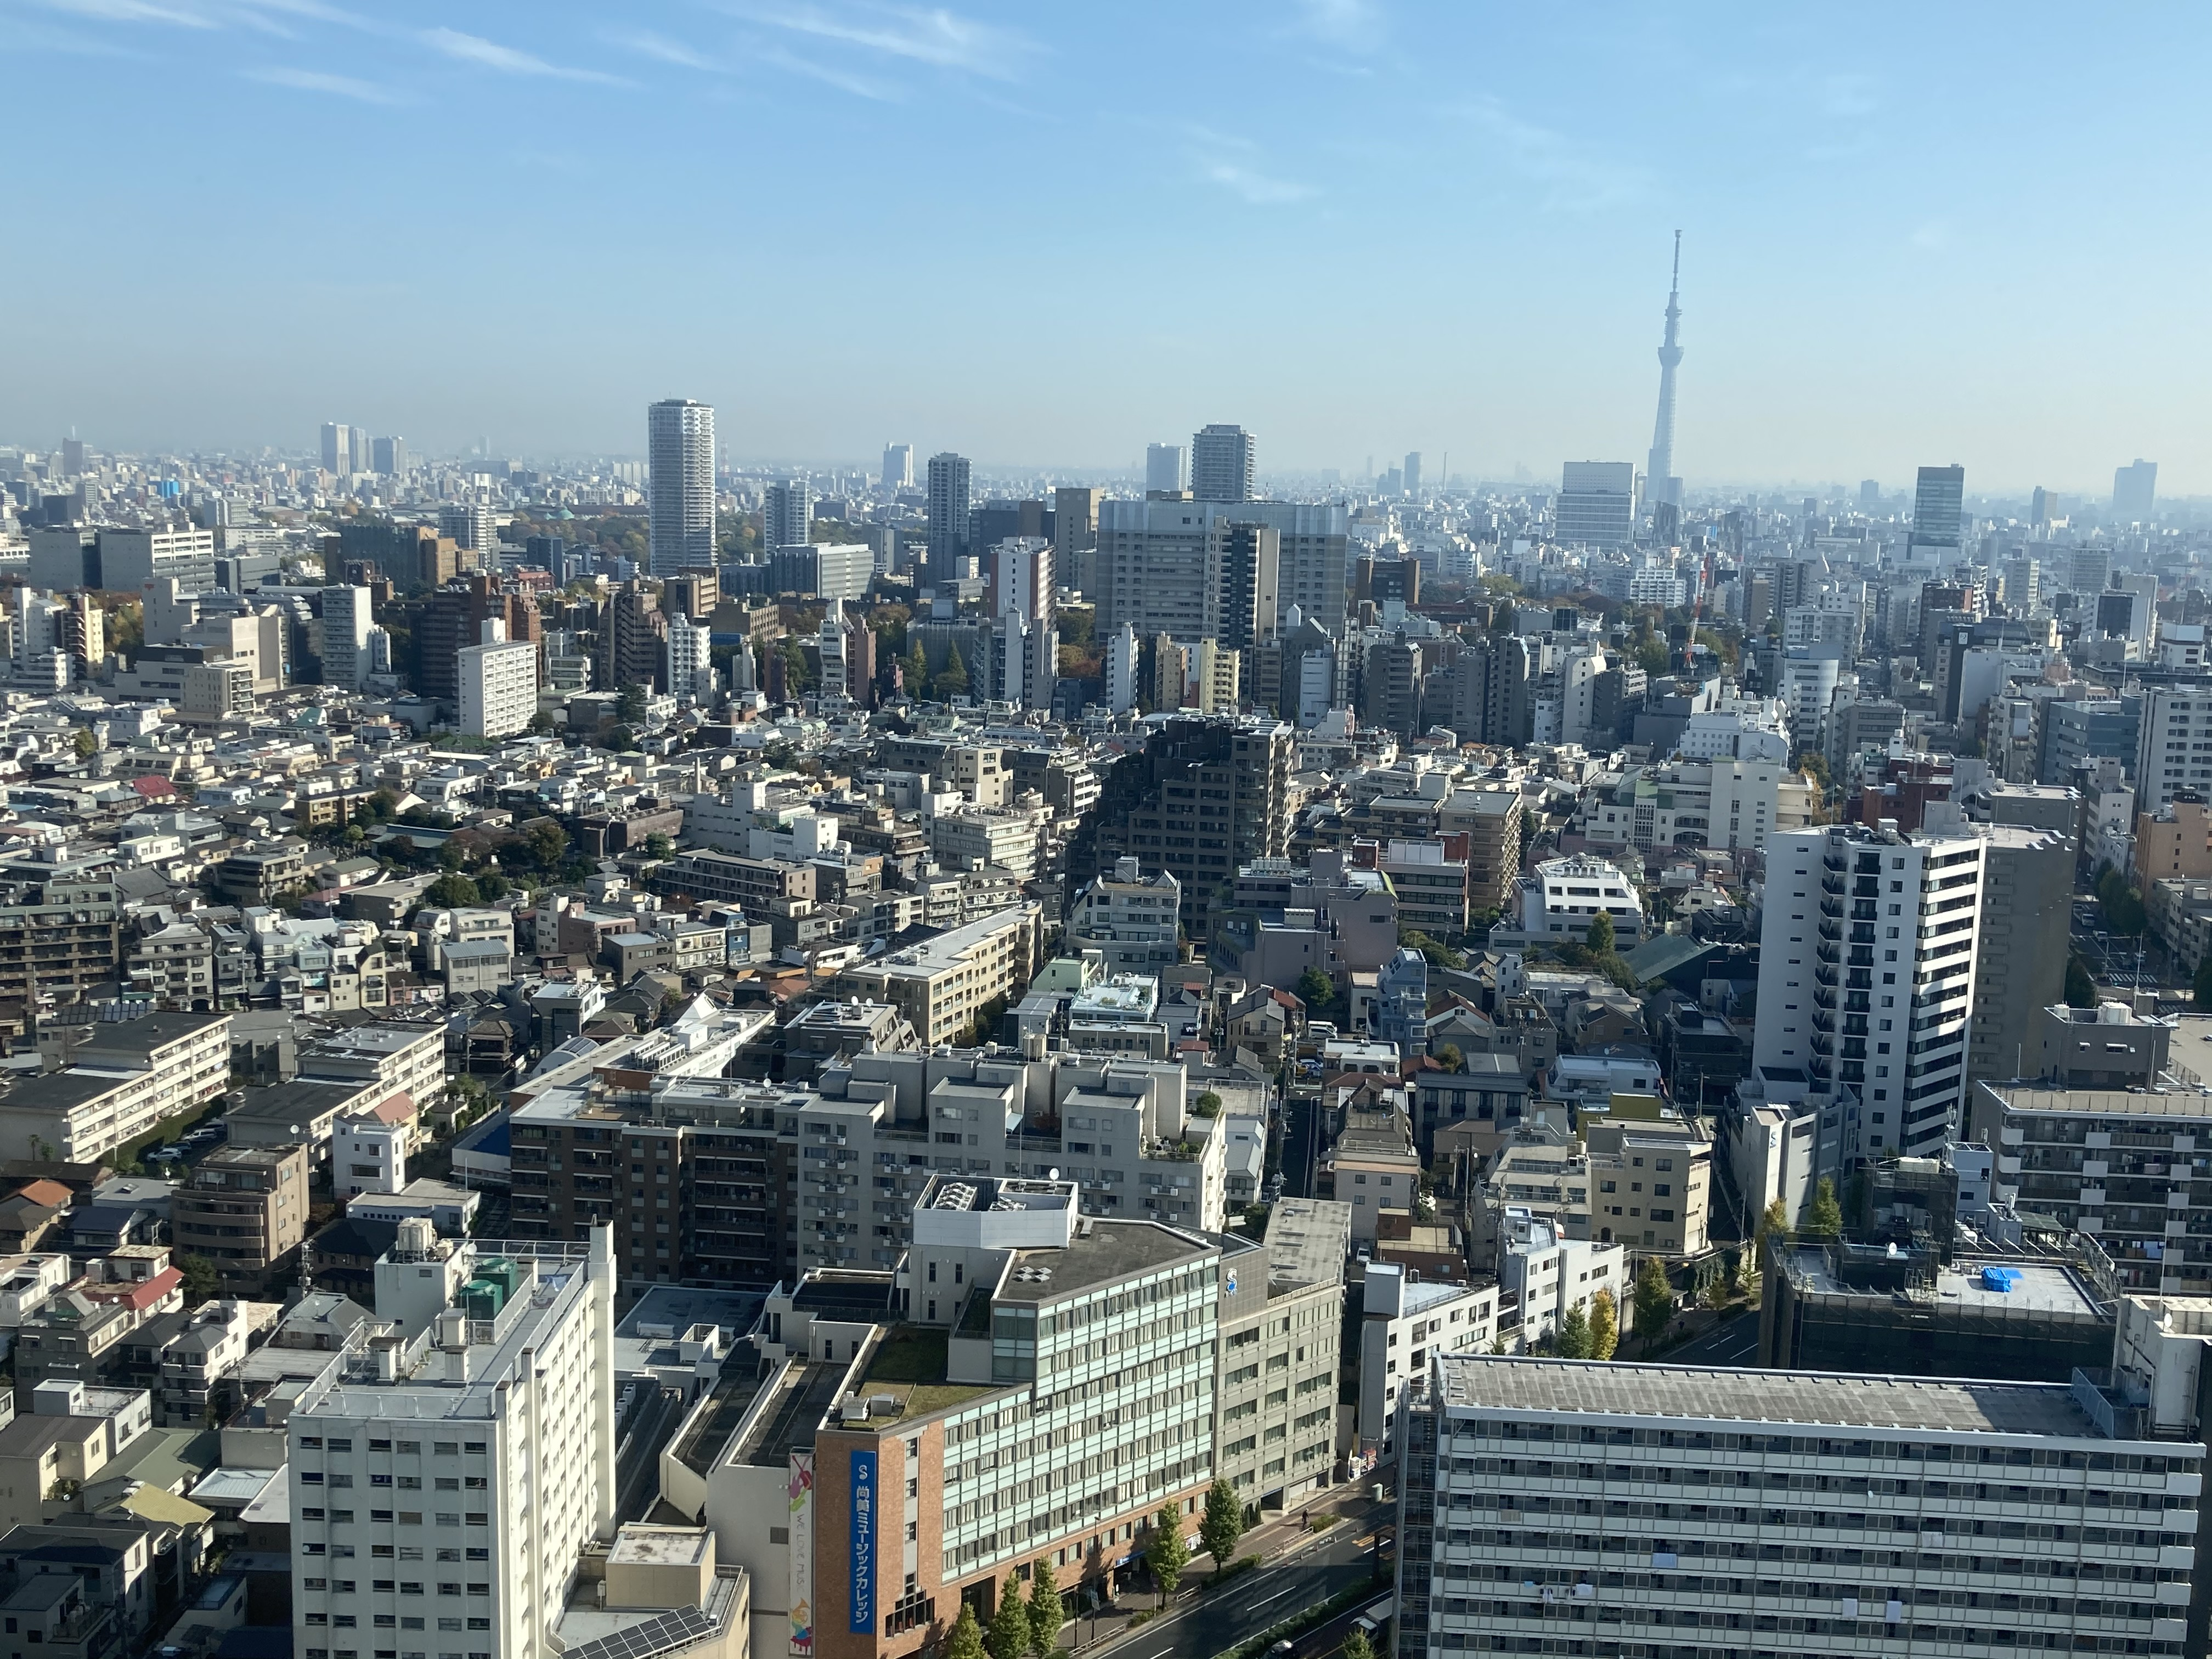 East side of Bunkyo City viewed from Civic Center Sky View Lounge (far right is Tokyo Skytree)